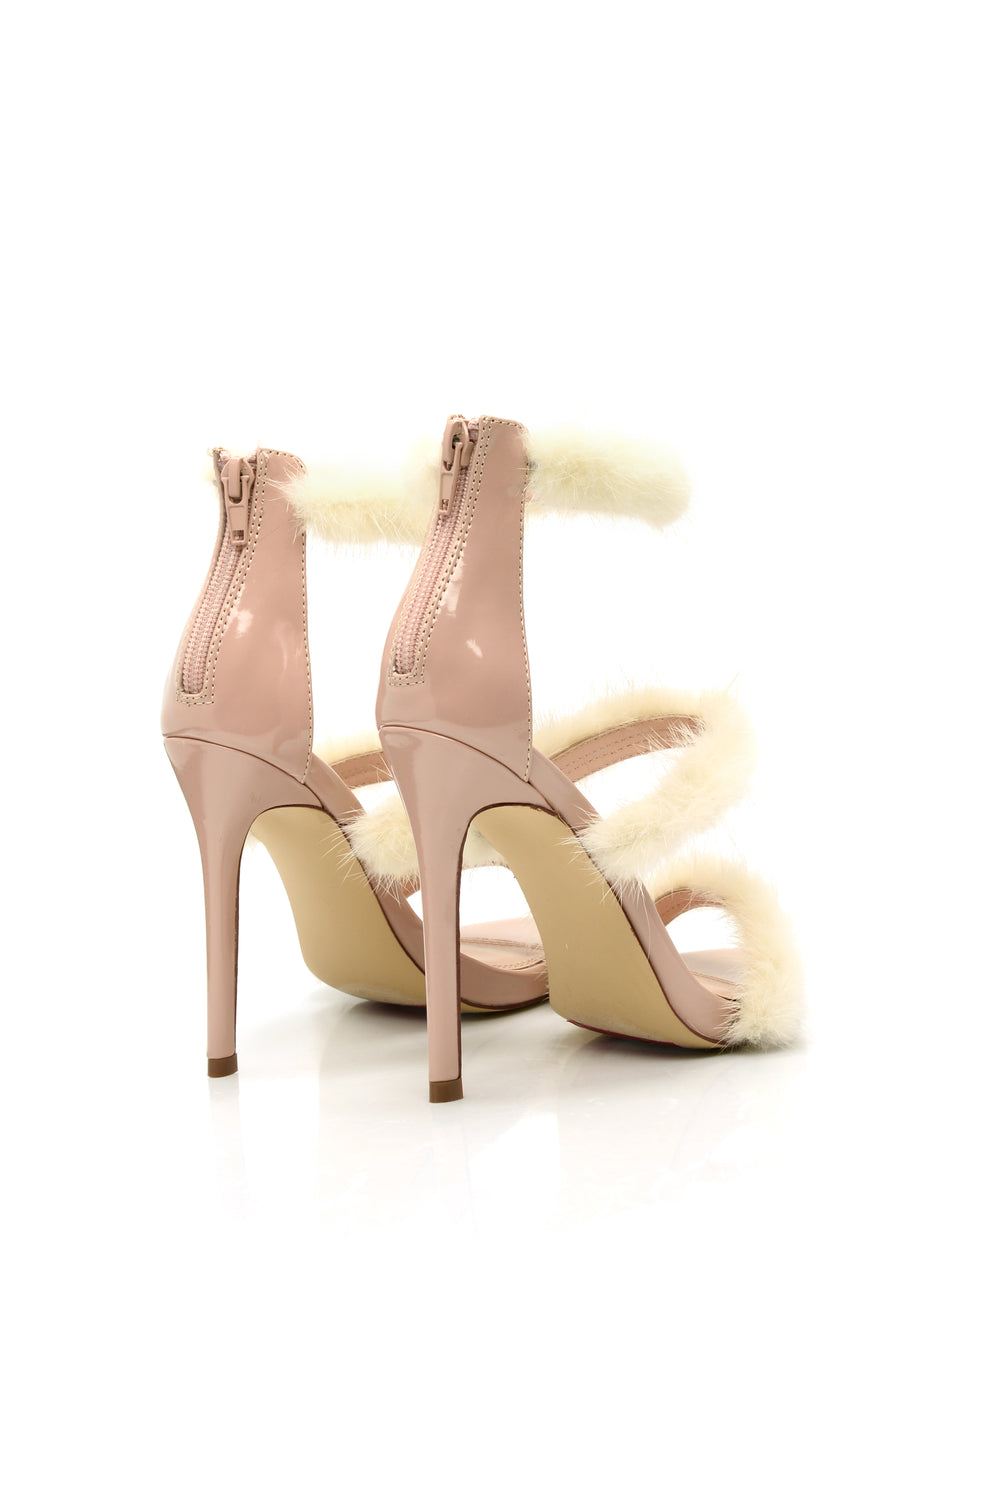 Soft To The Touch Heels - Nude